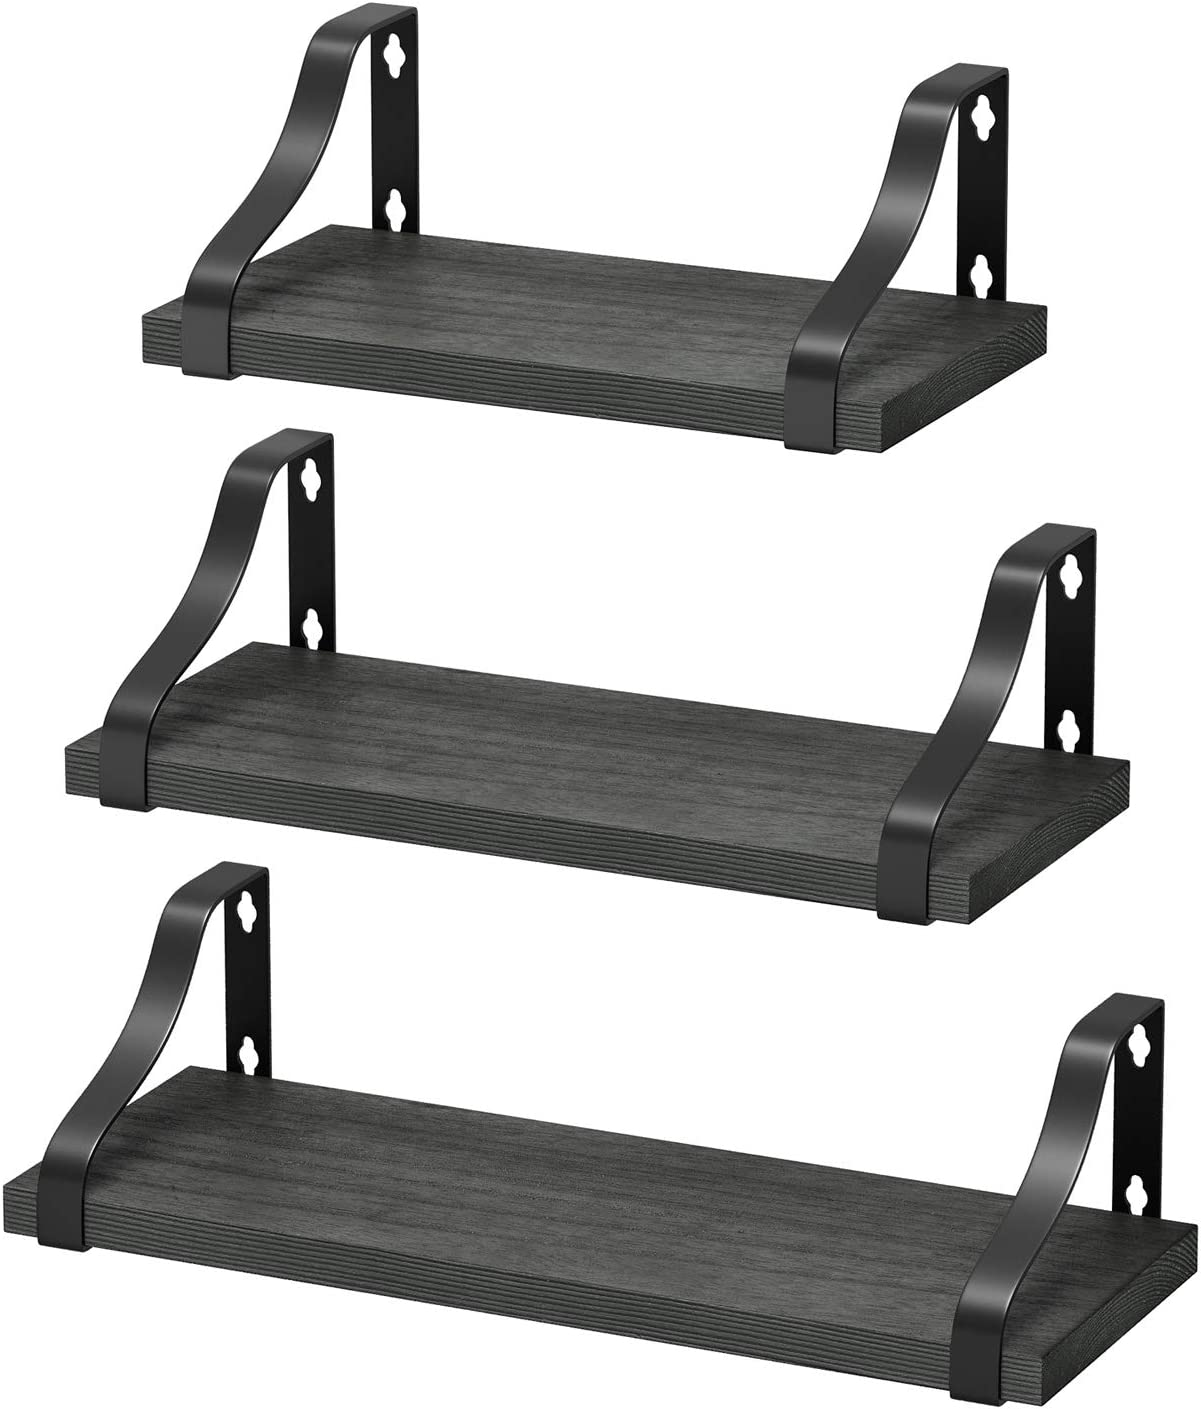 Homemaxs Floating Shelves Wall Mounted, Set of 3 Rustic Solid Wood Floating Shelf for Wall, Bathroom, Living Room, Bedroom and Kitchen, Wall Storage Shelf Fit for Any Style Home Decor-Rustic Gray